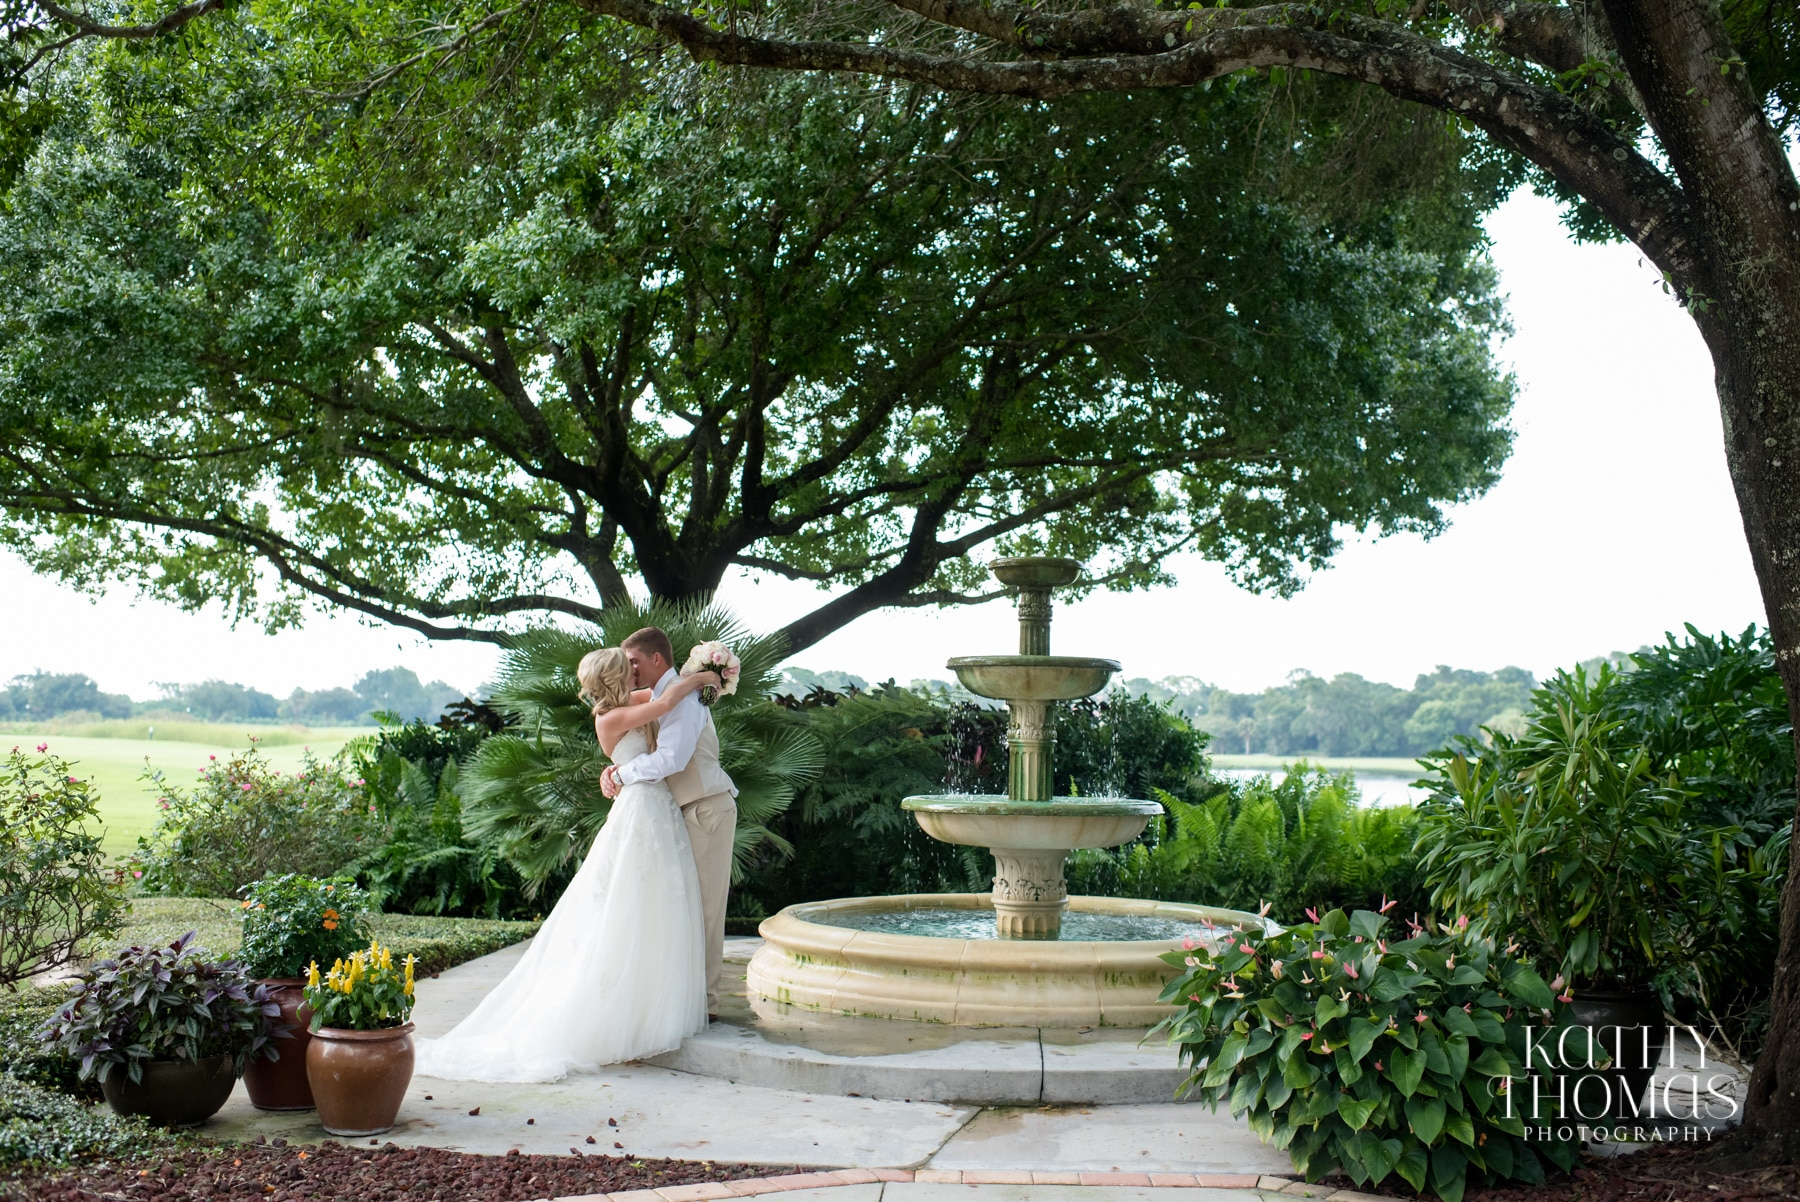 Bride and groom kissing beside beautiful rustic outdoor fountain